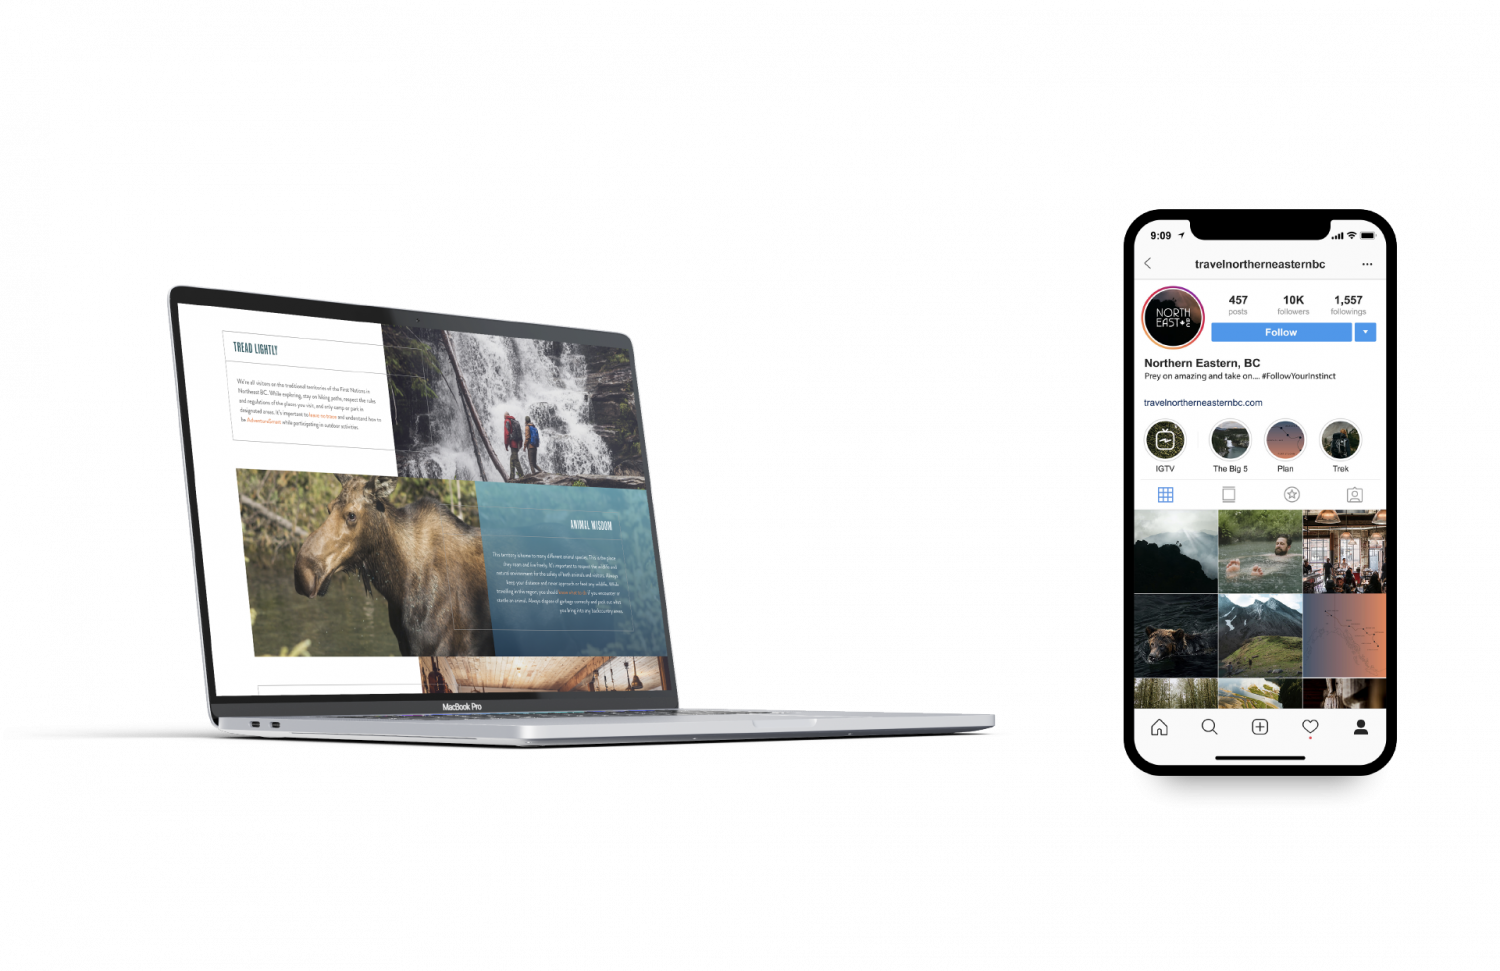 Laptop mockup of website and iPhone mockup of Instagram feed